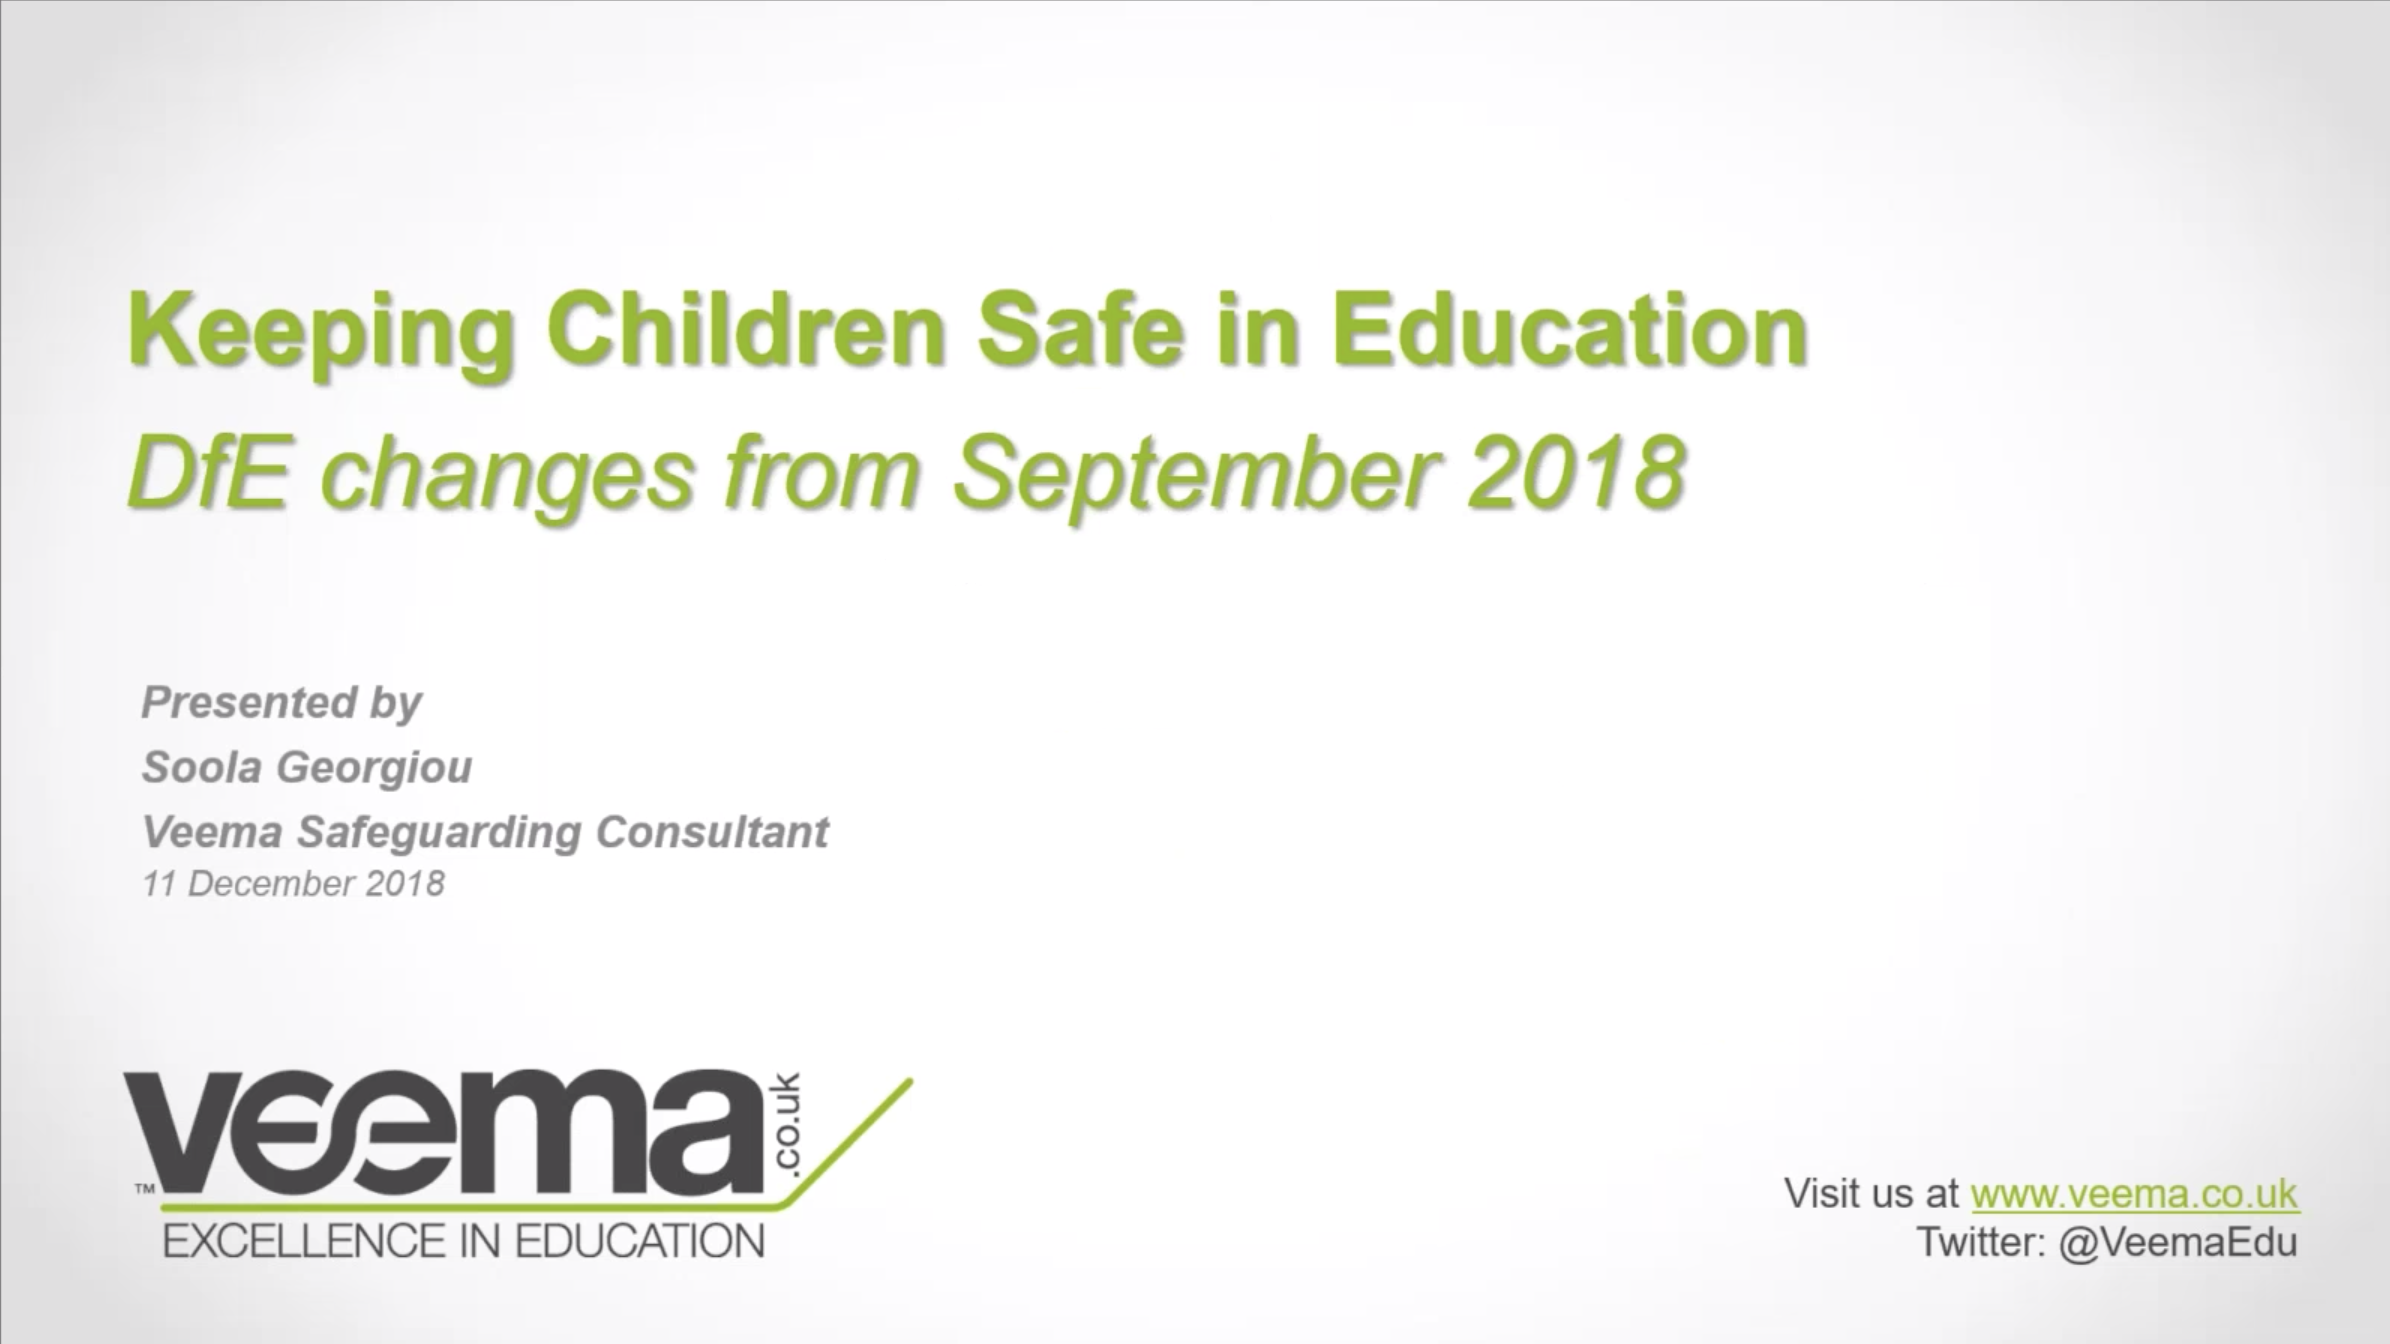 Safeguarding children in education